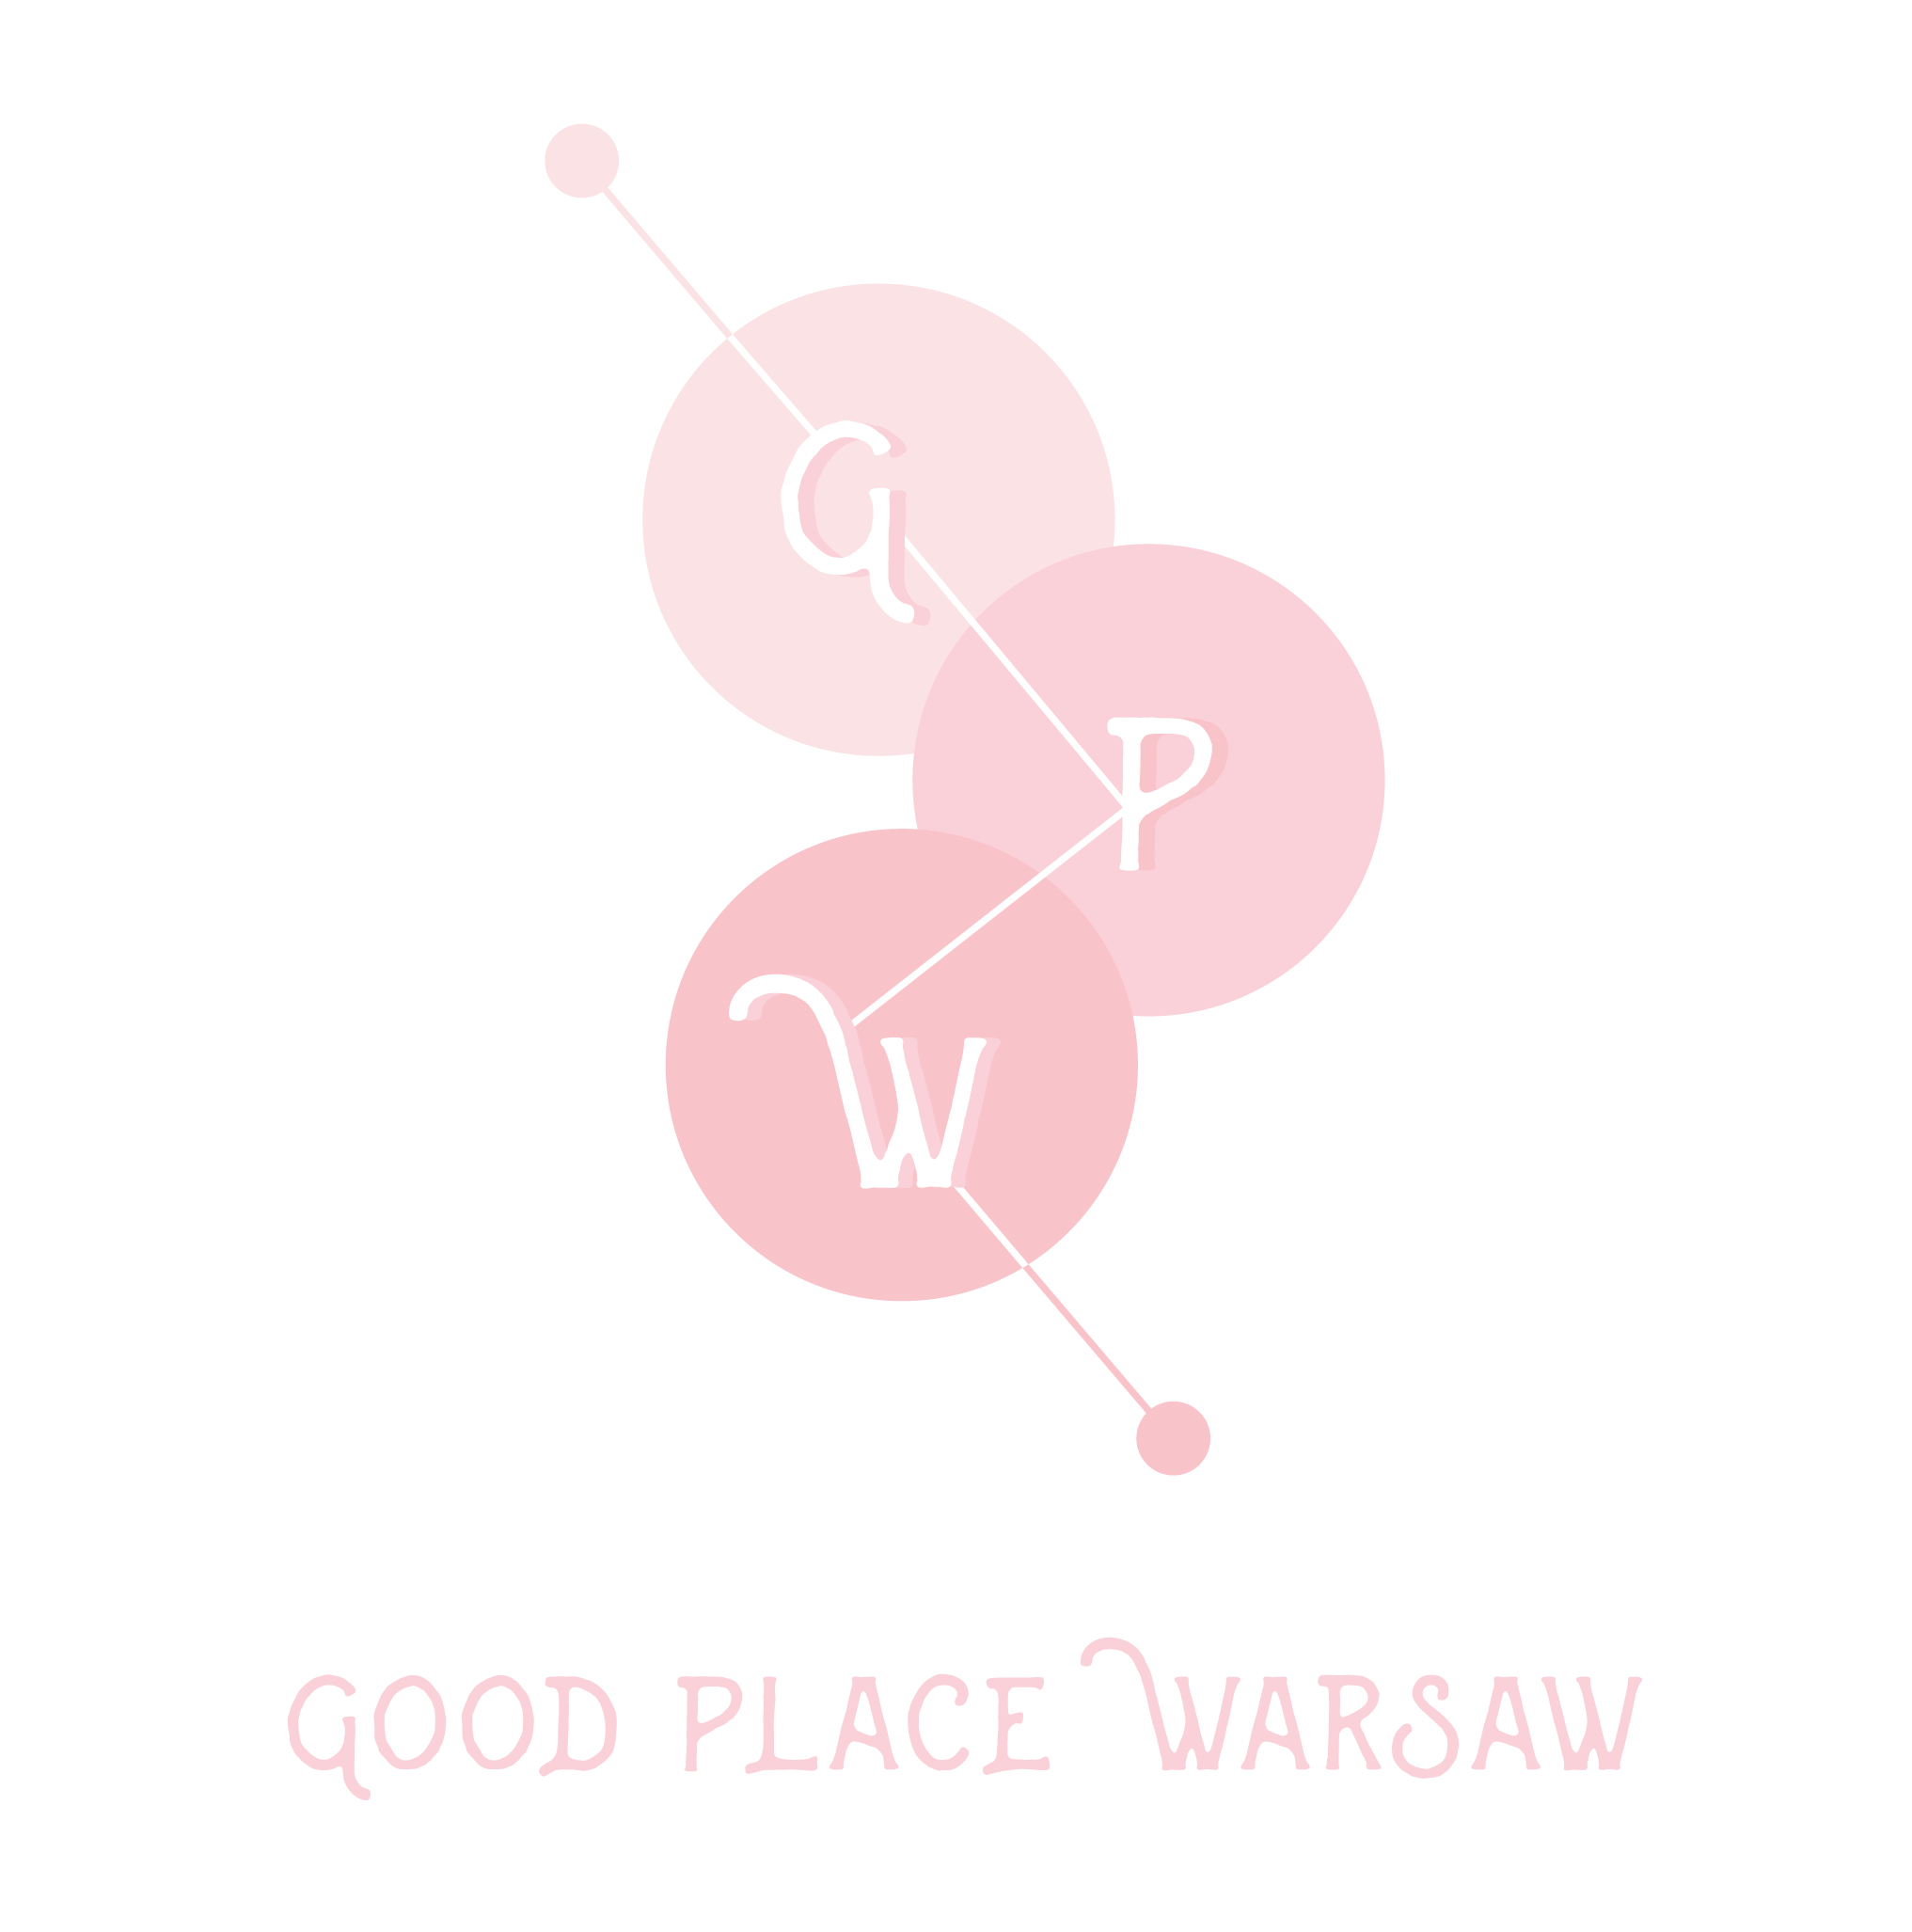 Good Place Warsaw